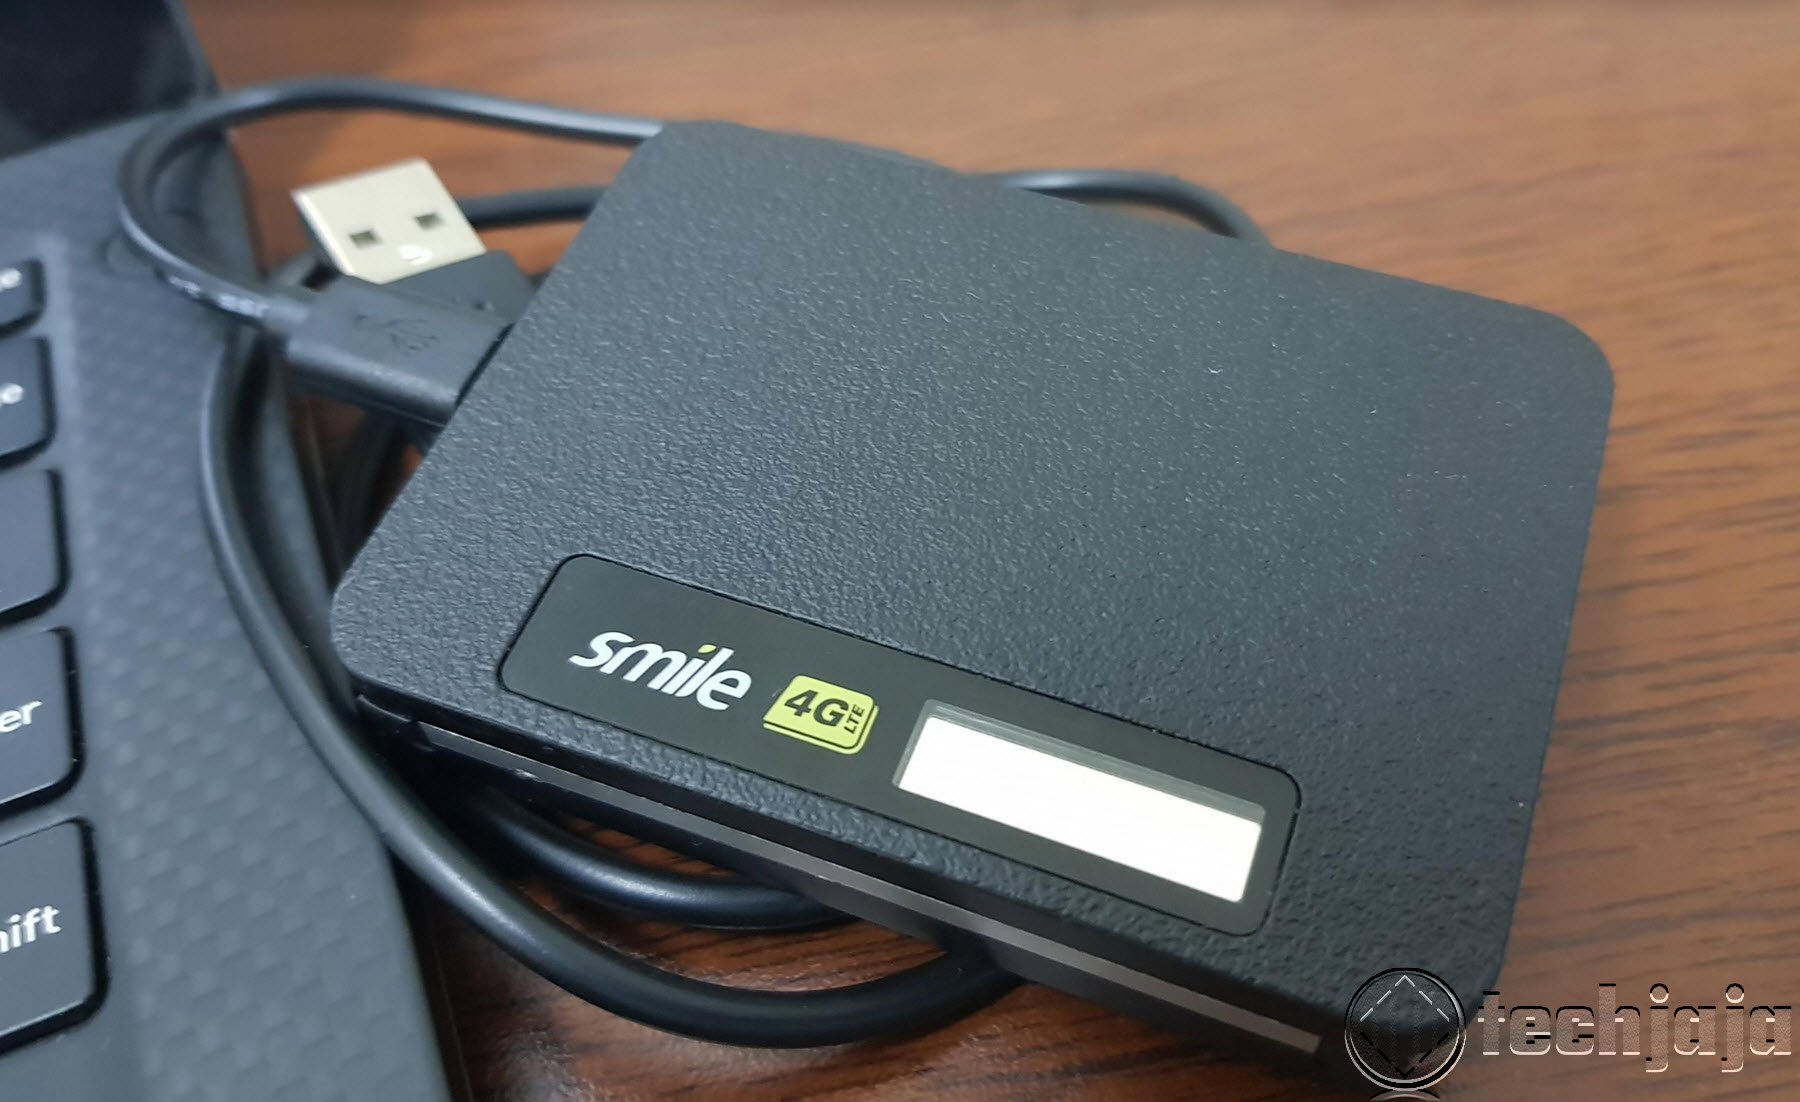 How to secure your Wi-Fi/MiFi router from unauthorized and ghost